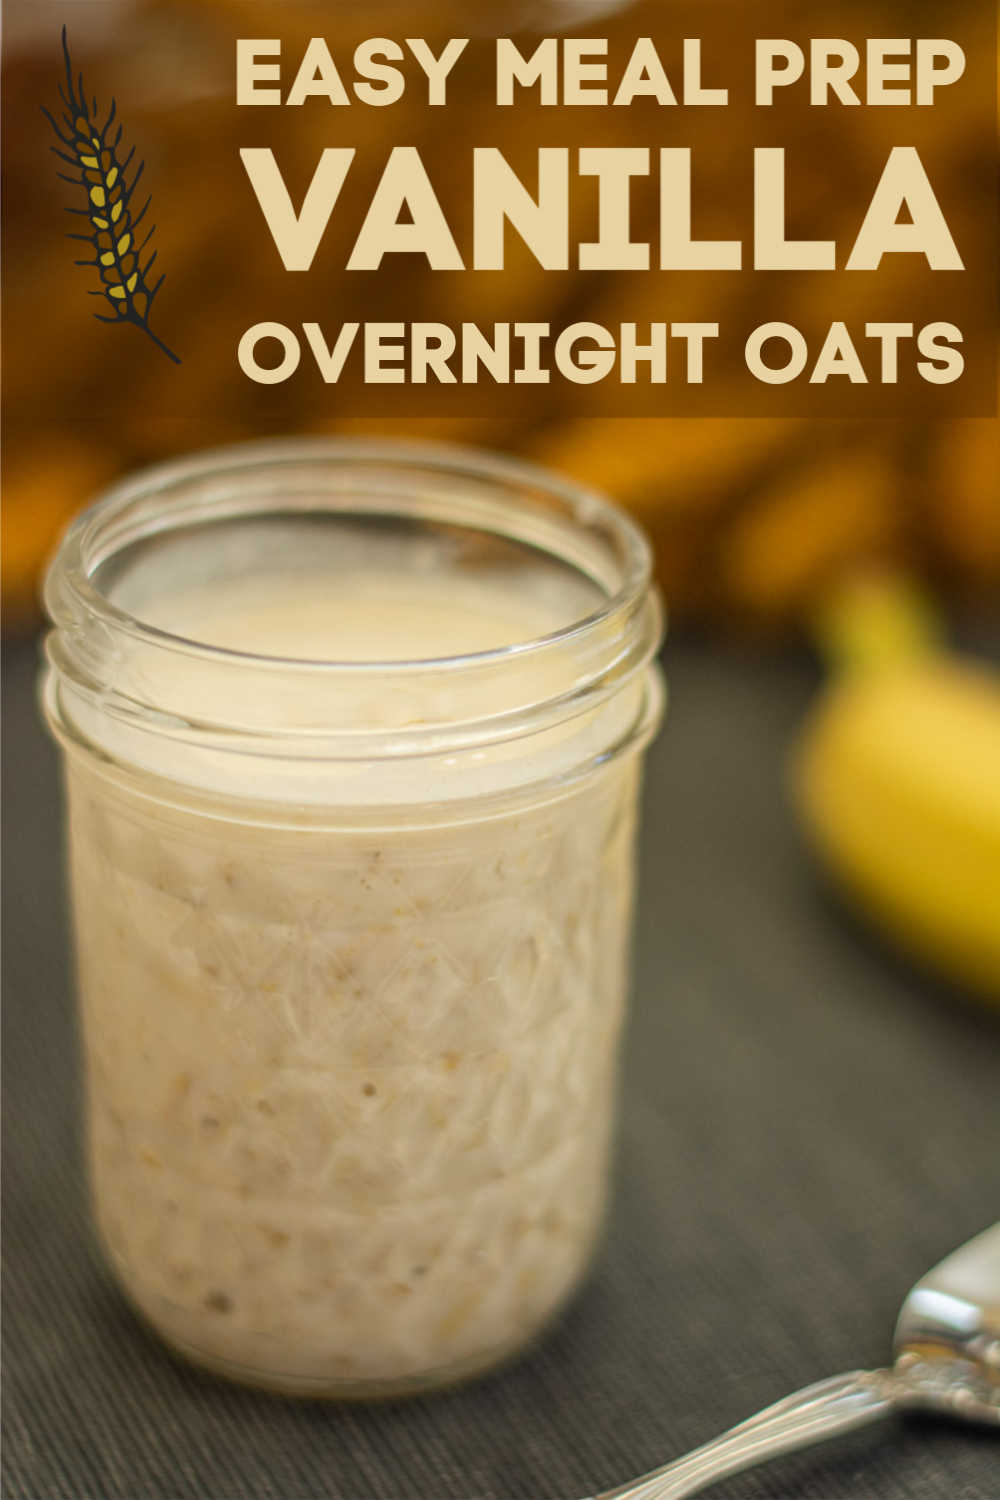 I can't believe how easy this meal prep breakfast is to make - and how delicious it is. Vanilla Overnight Oats for the win for these make ahead breakfasts! #vanilla #overnightoats #mealprep #makeahead #breakfast